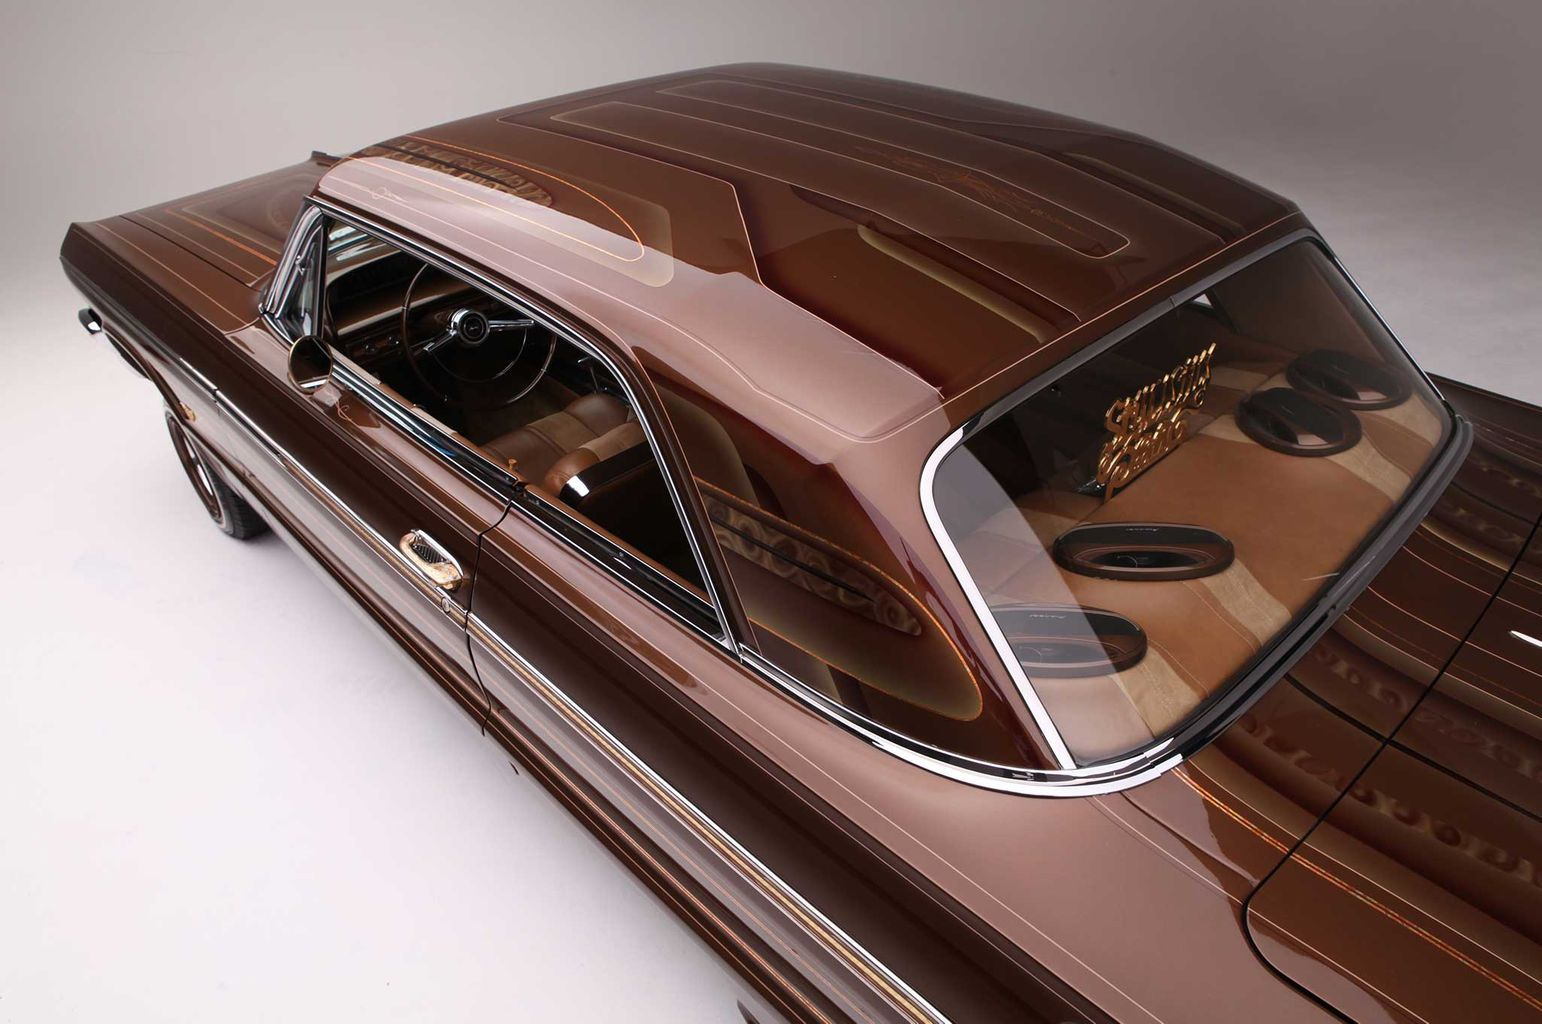 We don t see a lot of cars done well in brown but ciji ulloa s 1964 chevrolet impala wears it very well